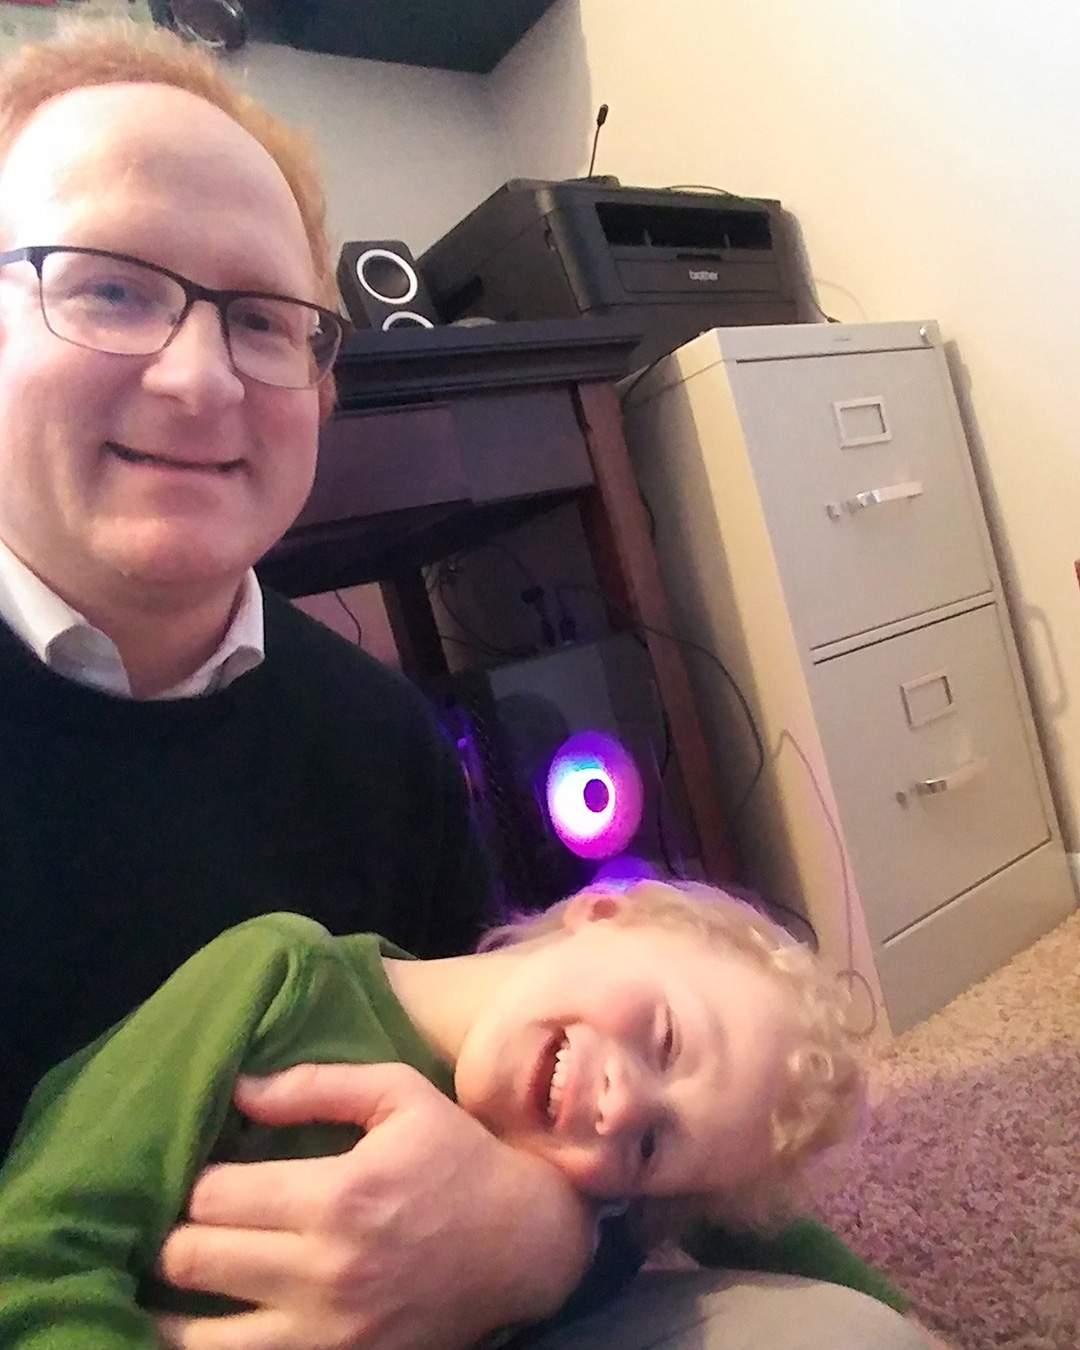 Professor Nick Proksch with his son at home